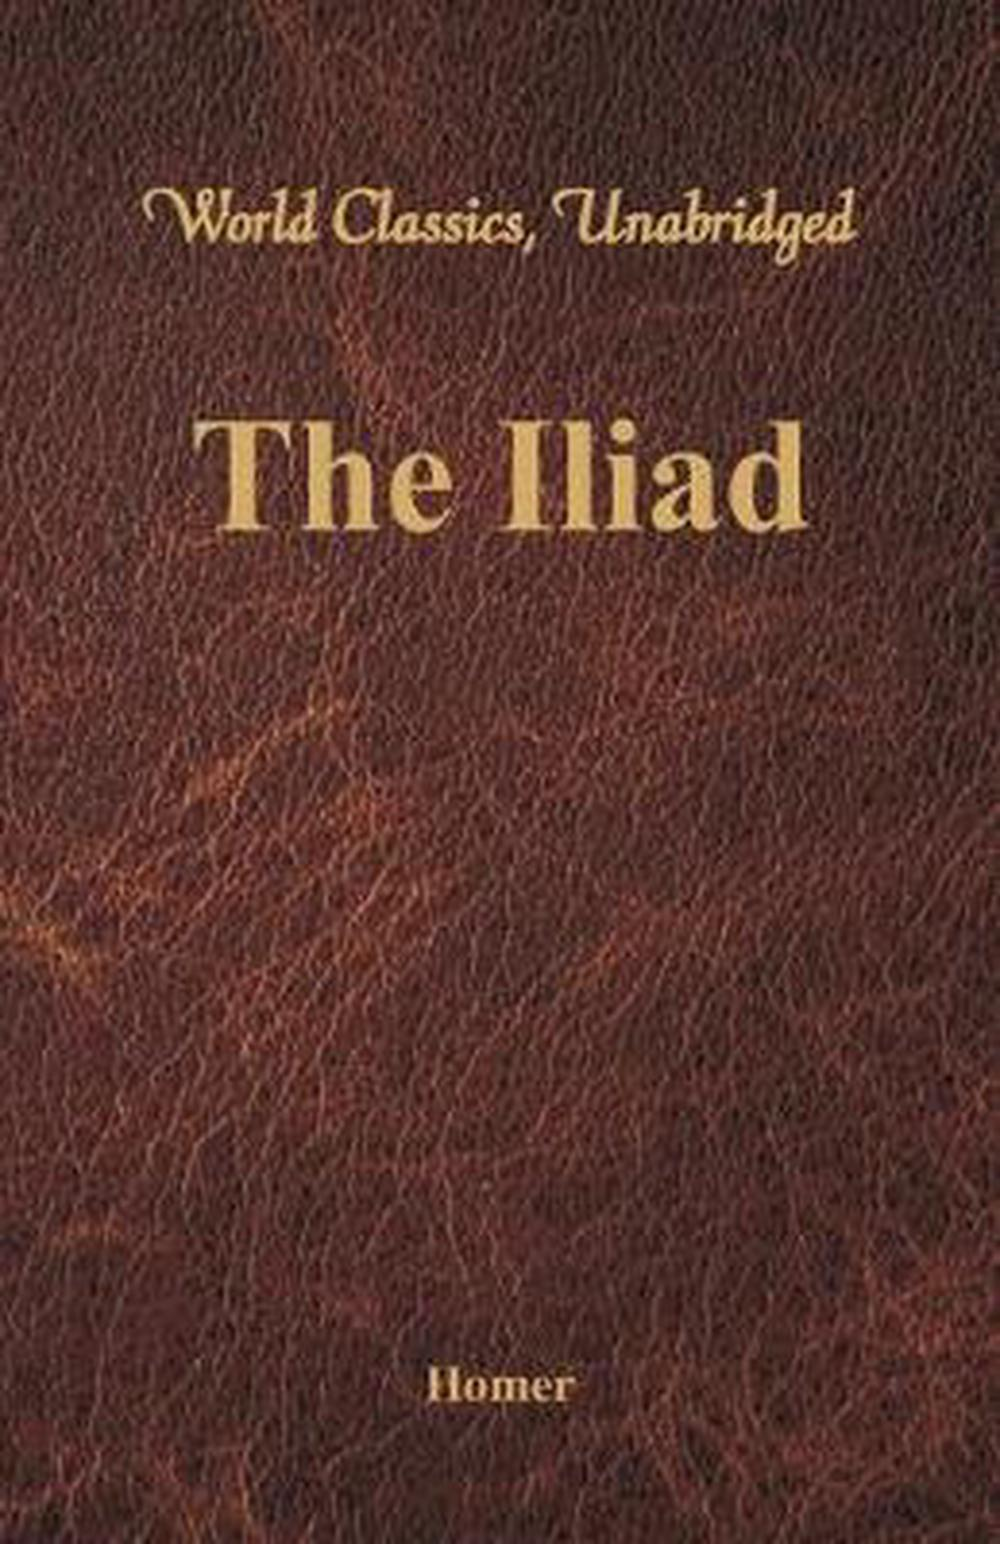 Iliad Homer Details About The Iliad World Classics Unabridged By Homer English Paperback Book Free Sh